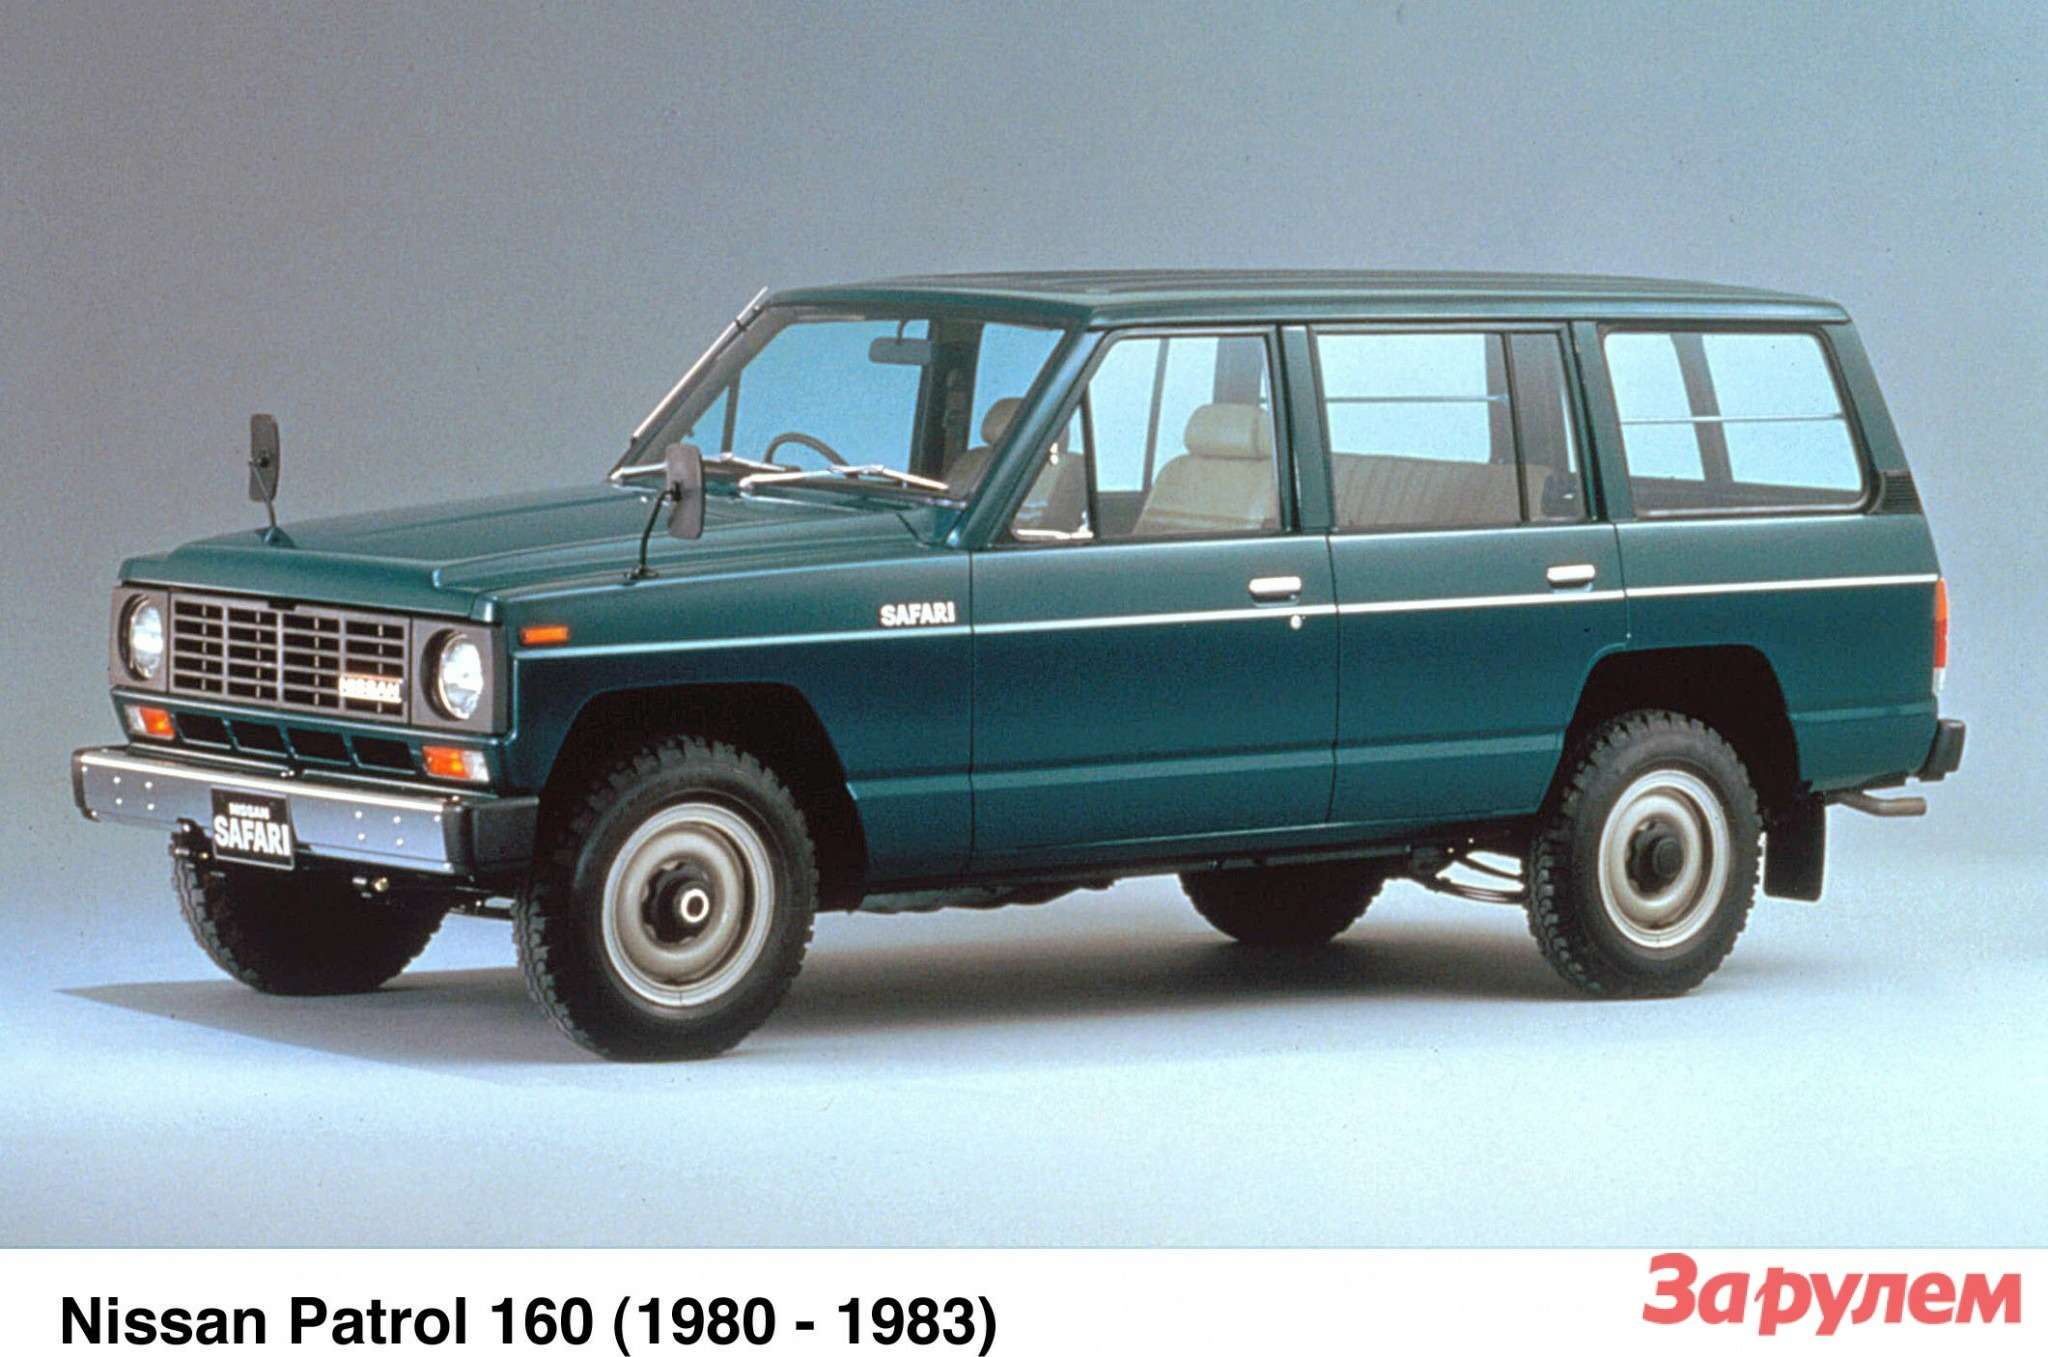 5 — 1980 Patrol 160 (Safari)